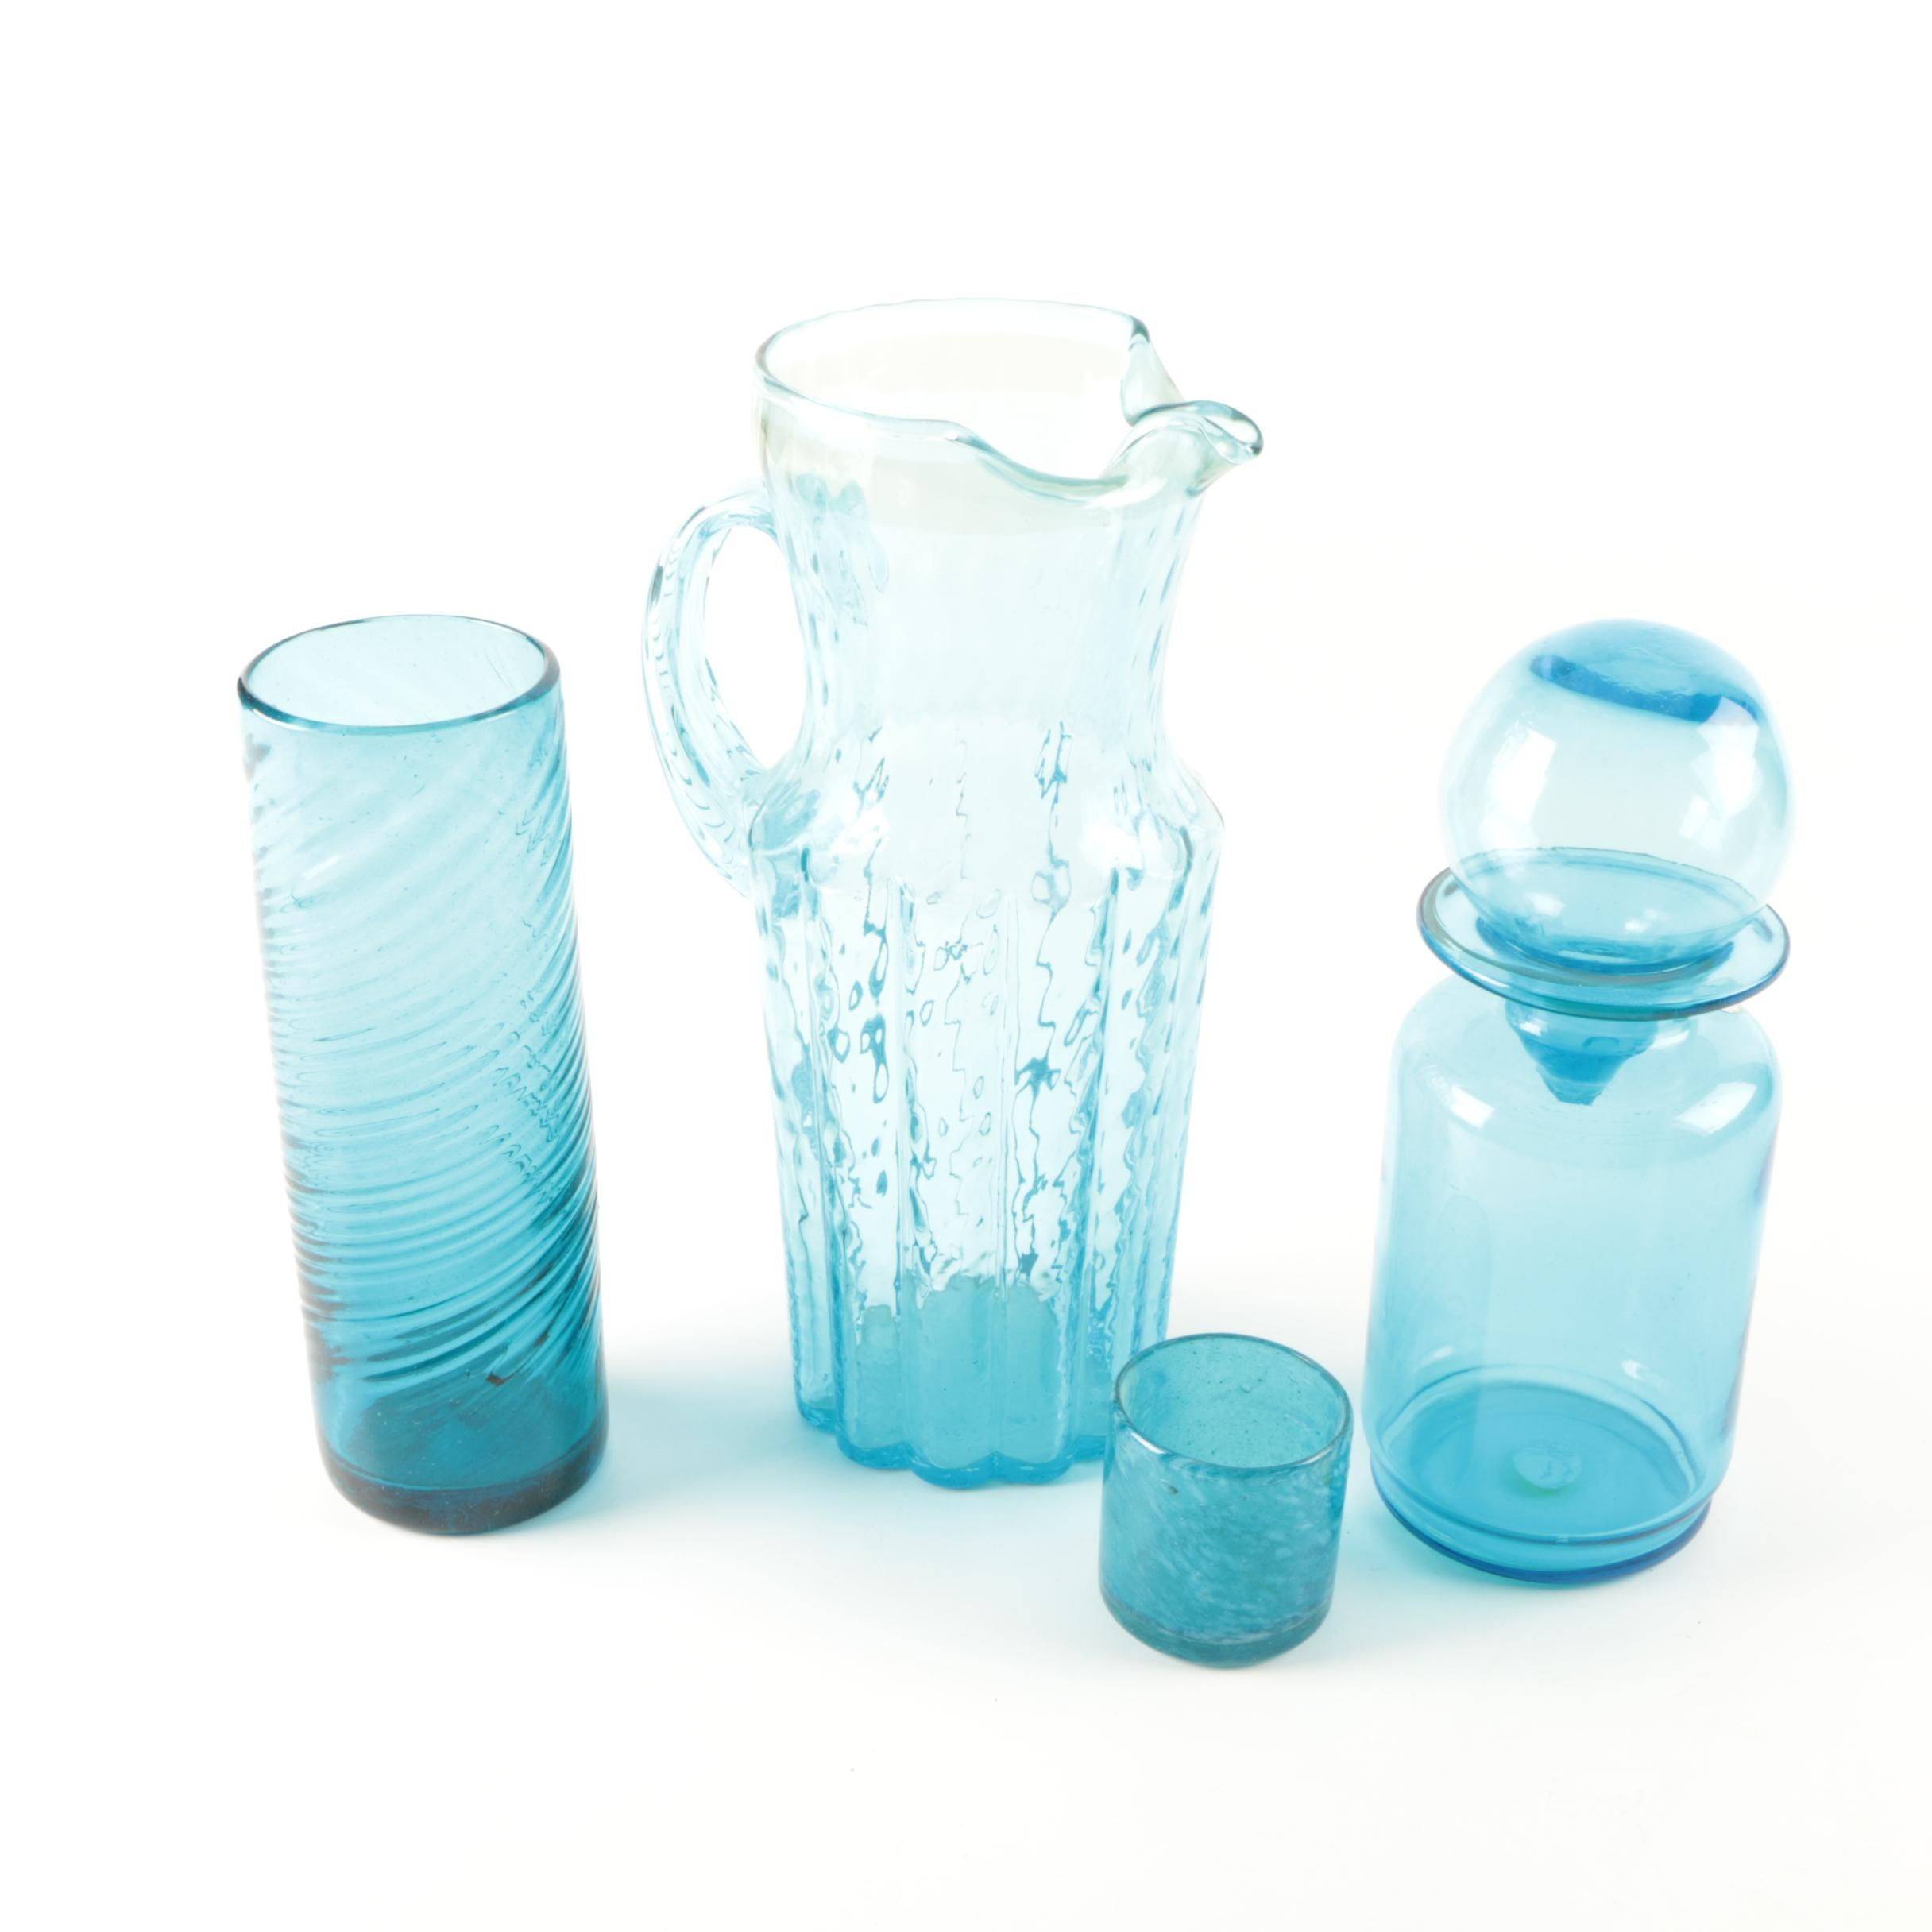 Blue Glass Decor and Serveware